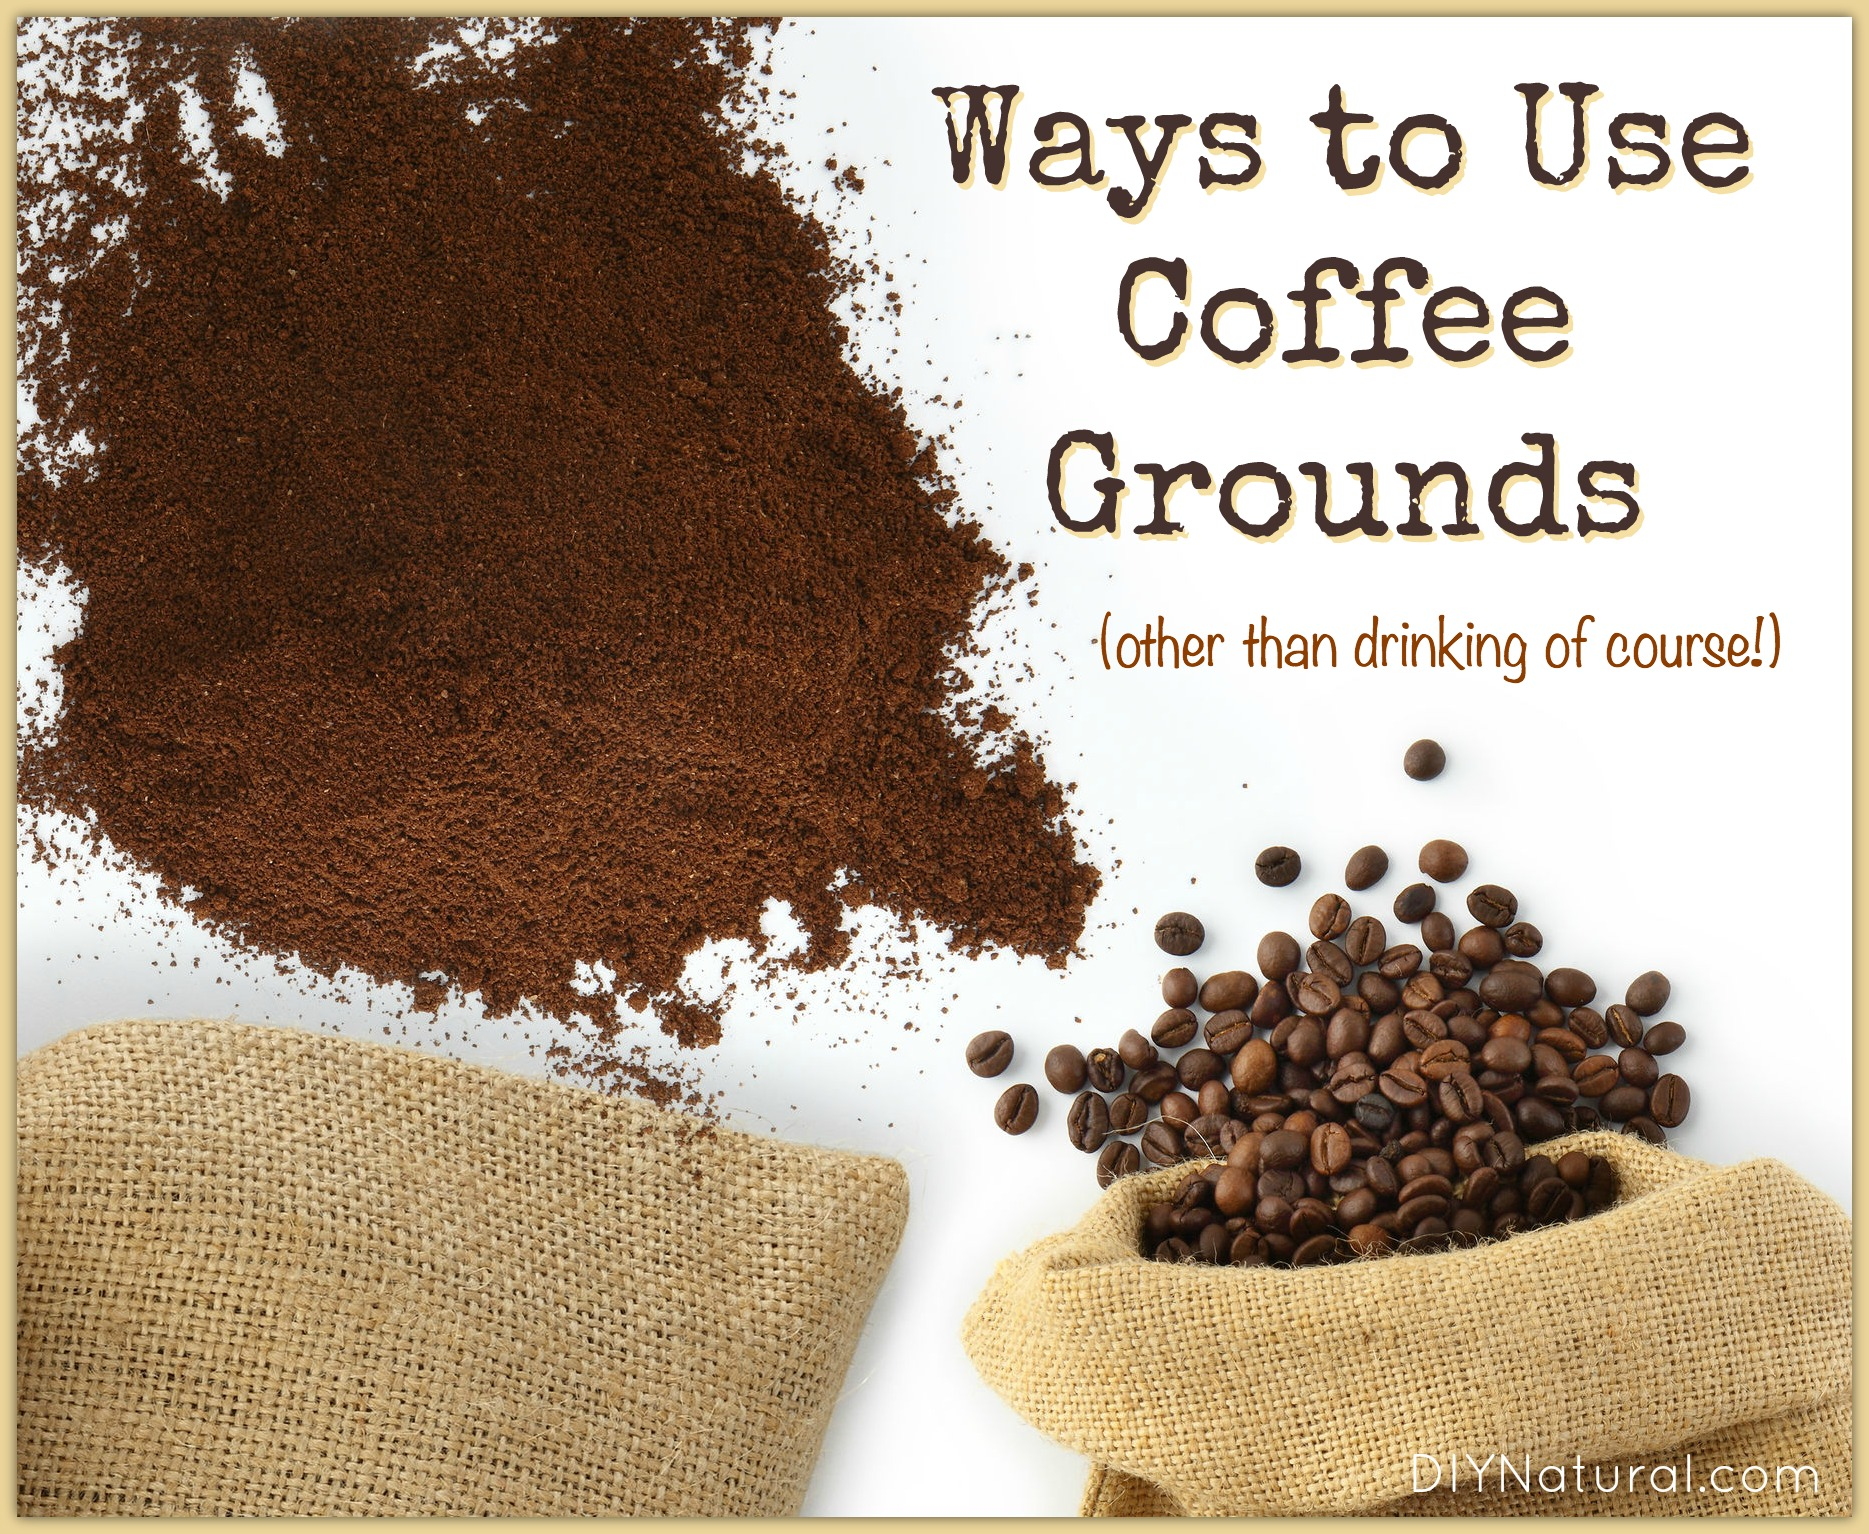 Coffee grounds interesting ways to use coffee grounds for How to use coffee grounds in garden